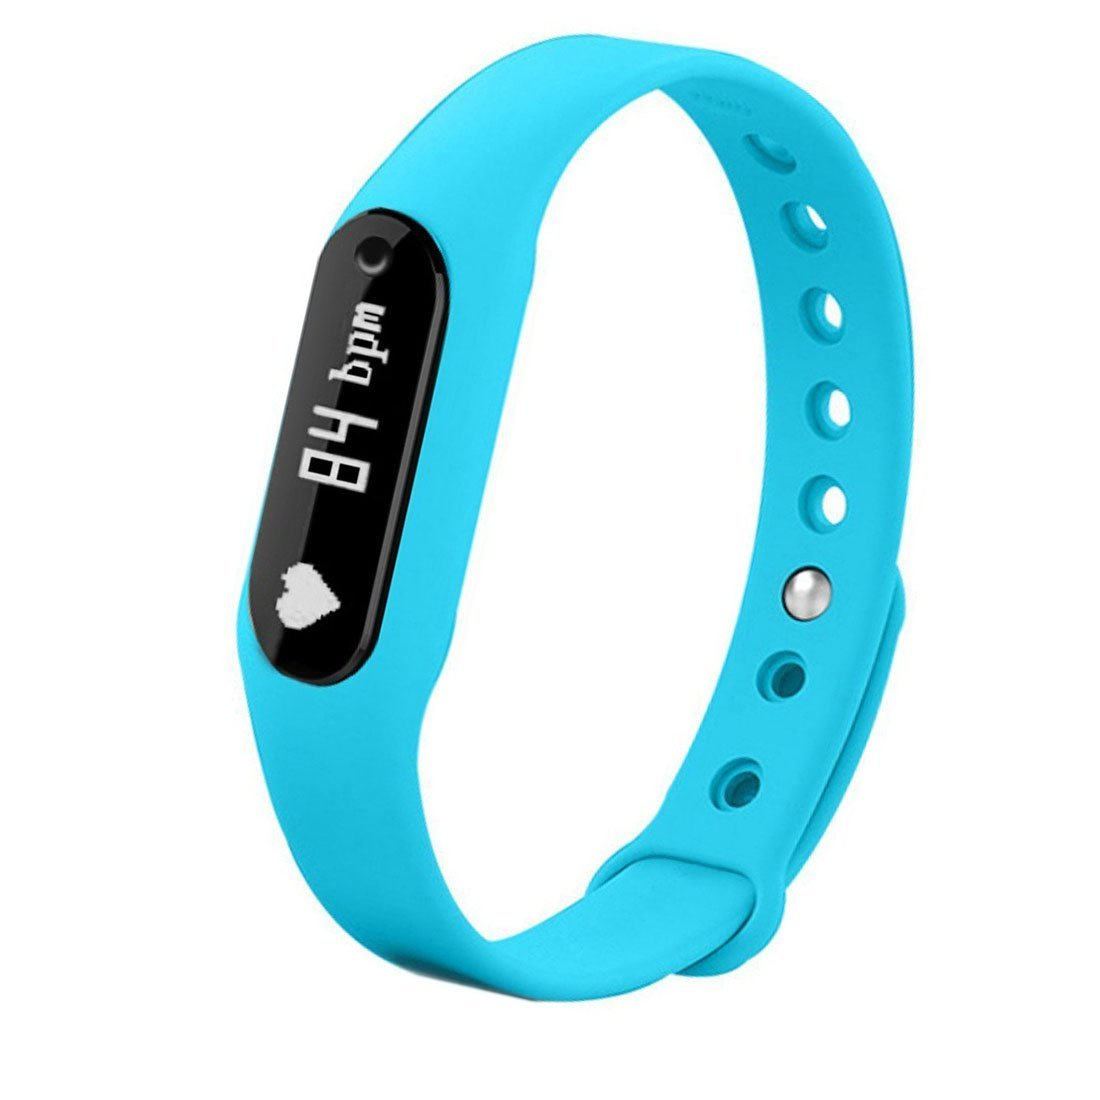 Bestseller2888 Smart Band Heart Rate Monitor/ Smartband/ Smart Wristband/ Smart Bracelet Fitness Wearable Activity Tracker/ Waterproof Bluetooth Health Fitness Band-Blue